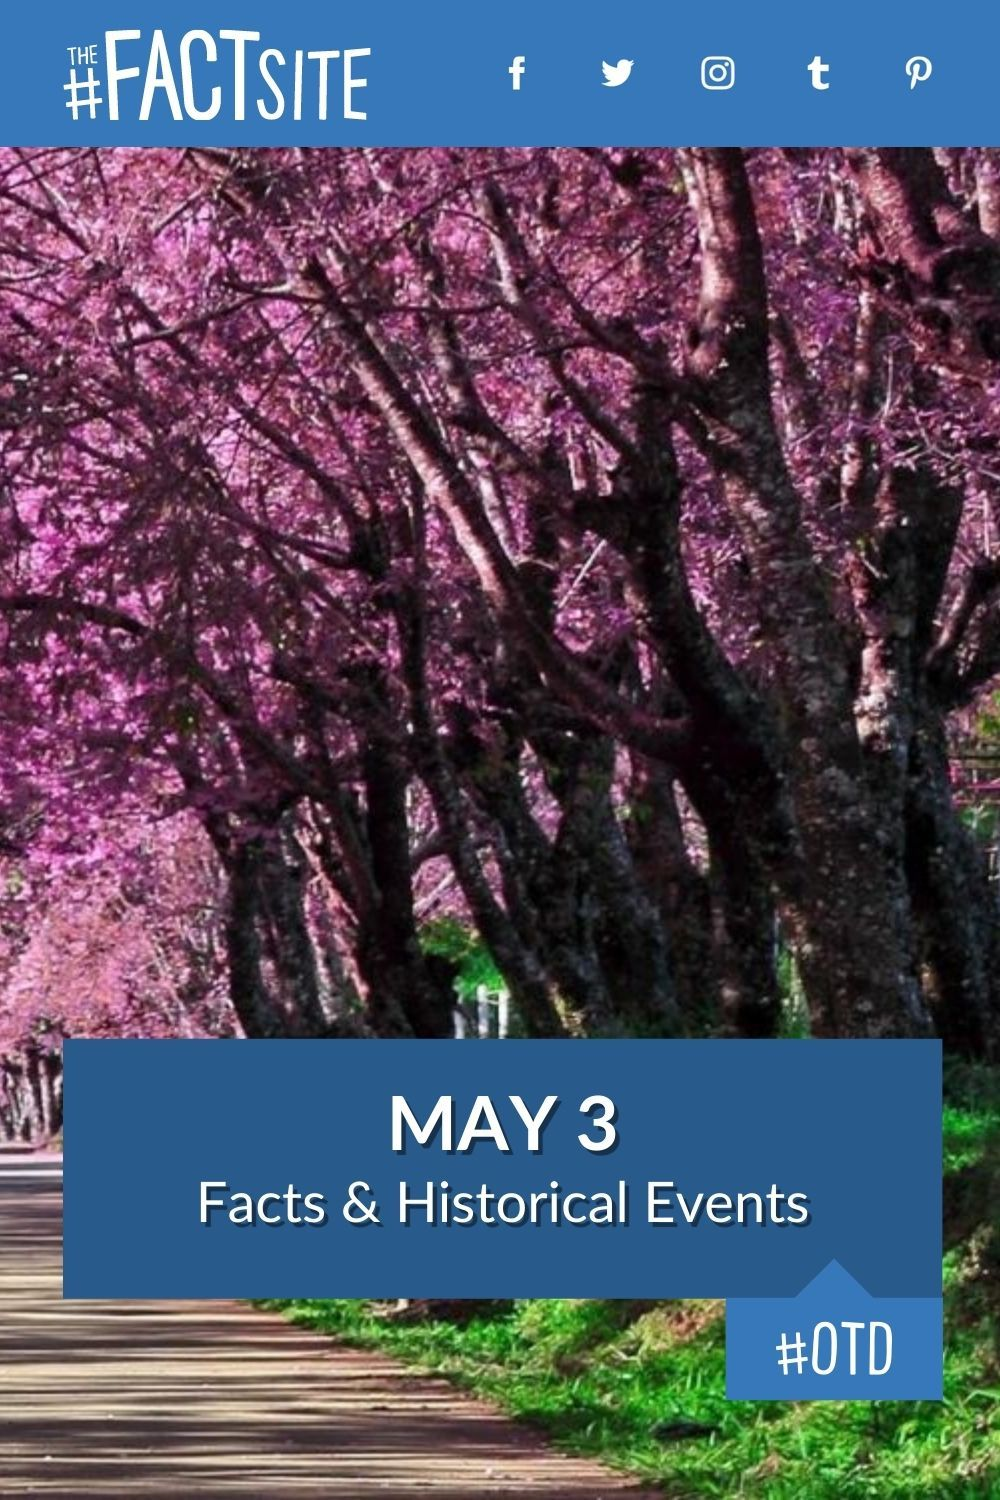 Facts & Historic Events That Happened on May 3